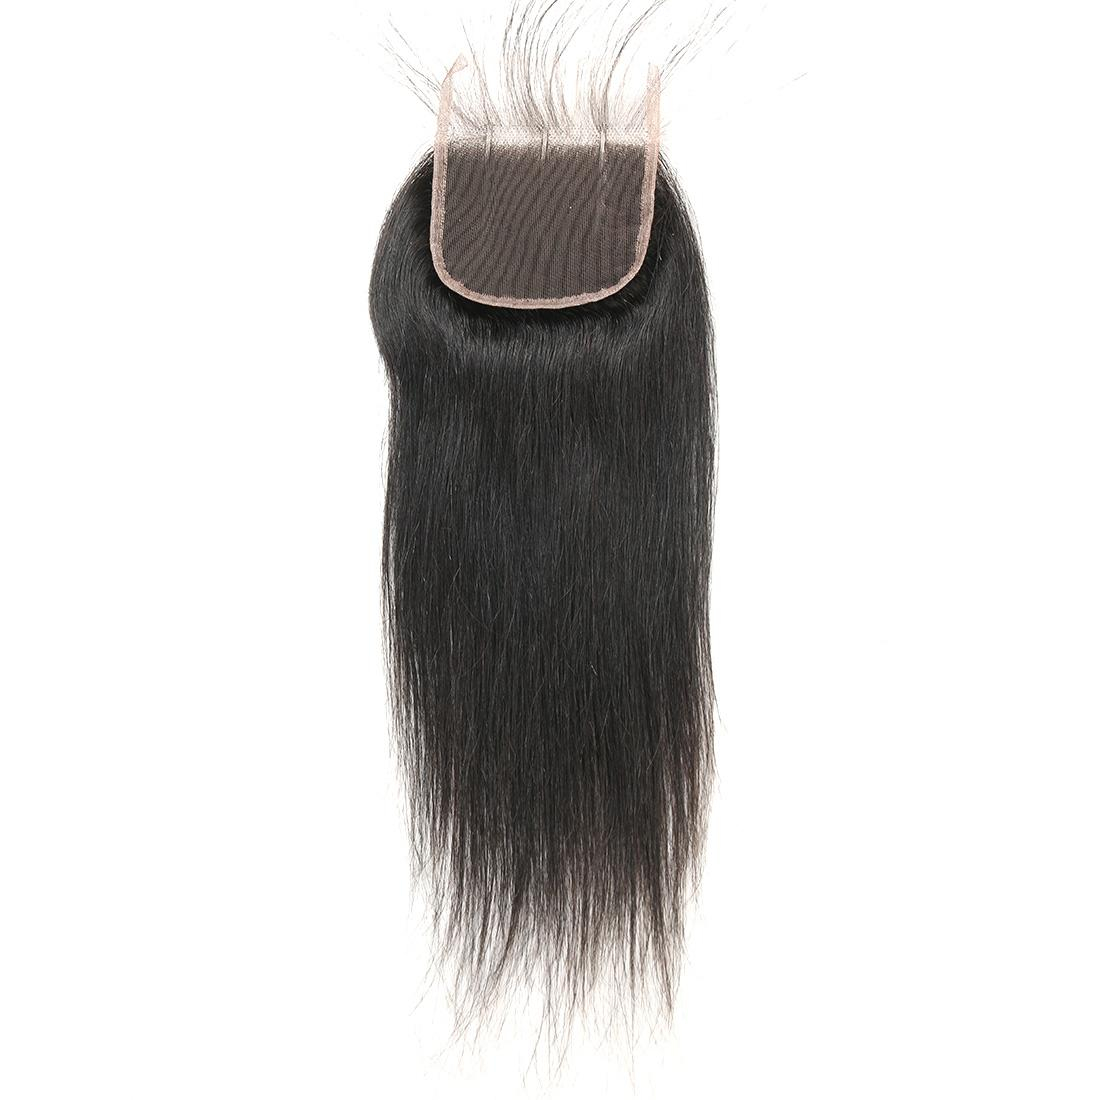 Peruvian Straight Virgin Human Hair Lace Closure 4x4 Free Part Middle Part Three Part Human Hair Lace Closure